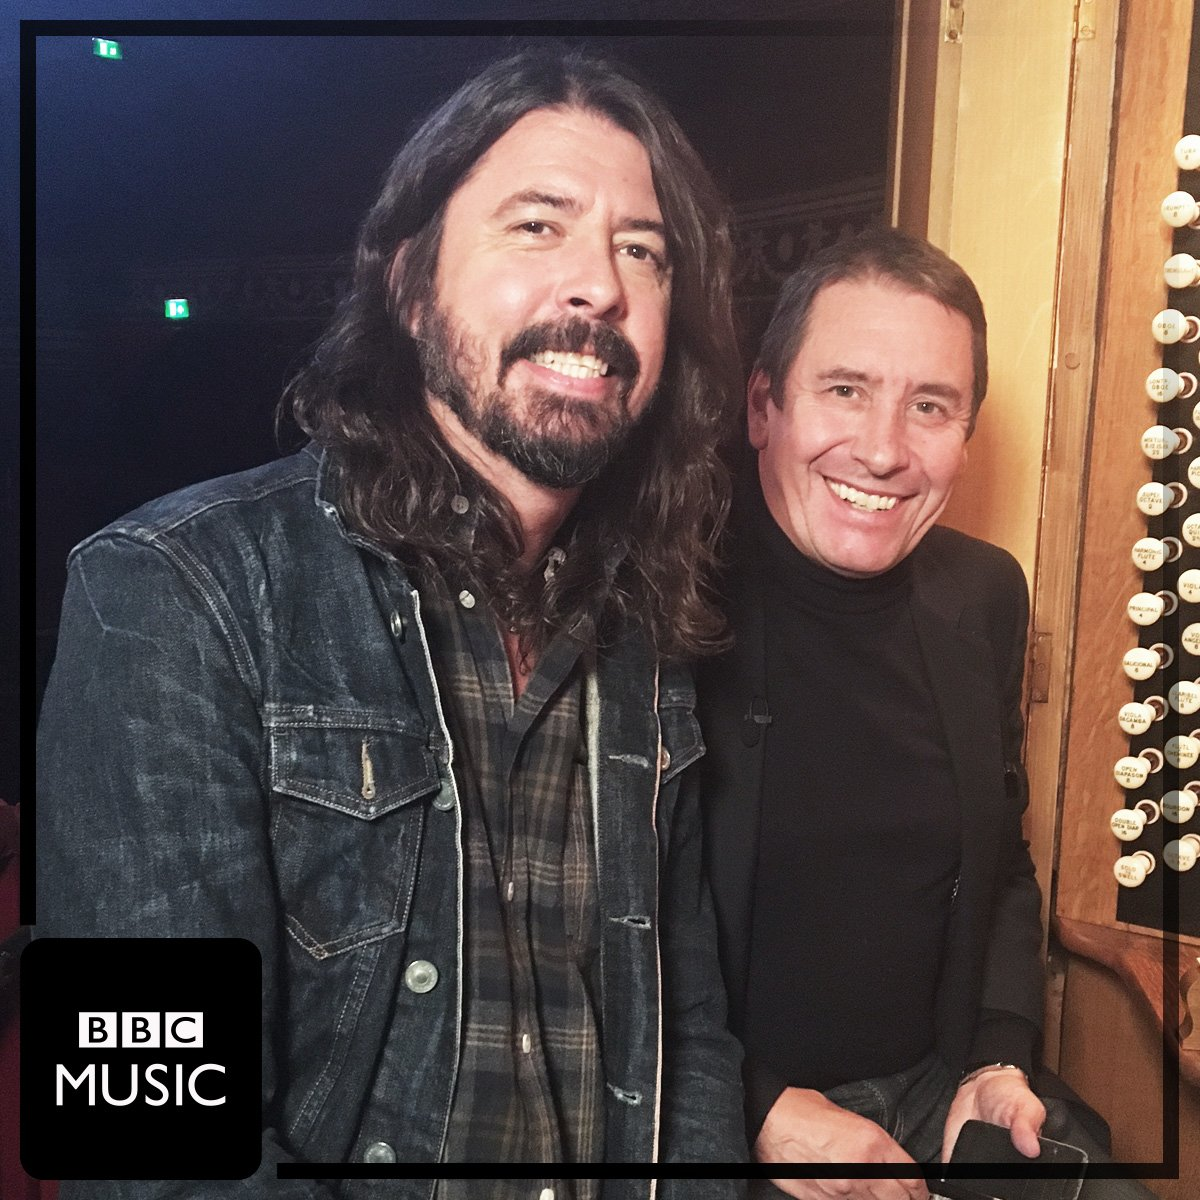 Dave Grohl and Jools Holland pictured backstage at 's #LaterJ...